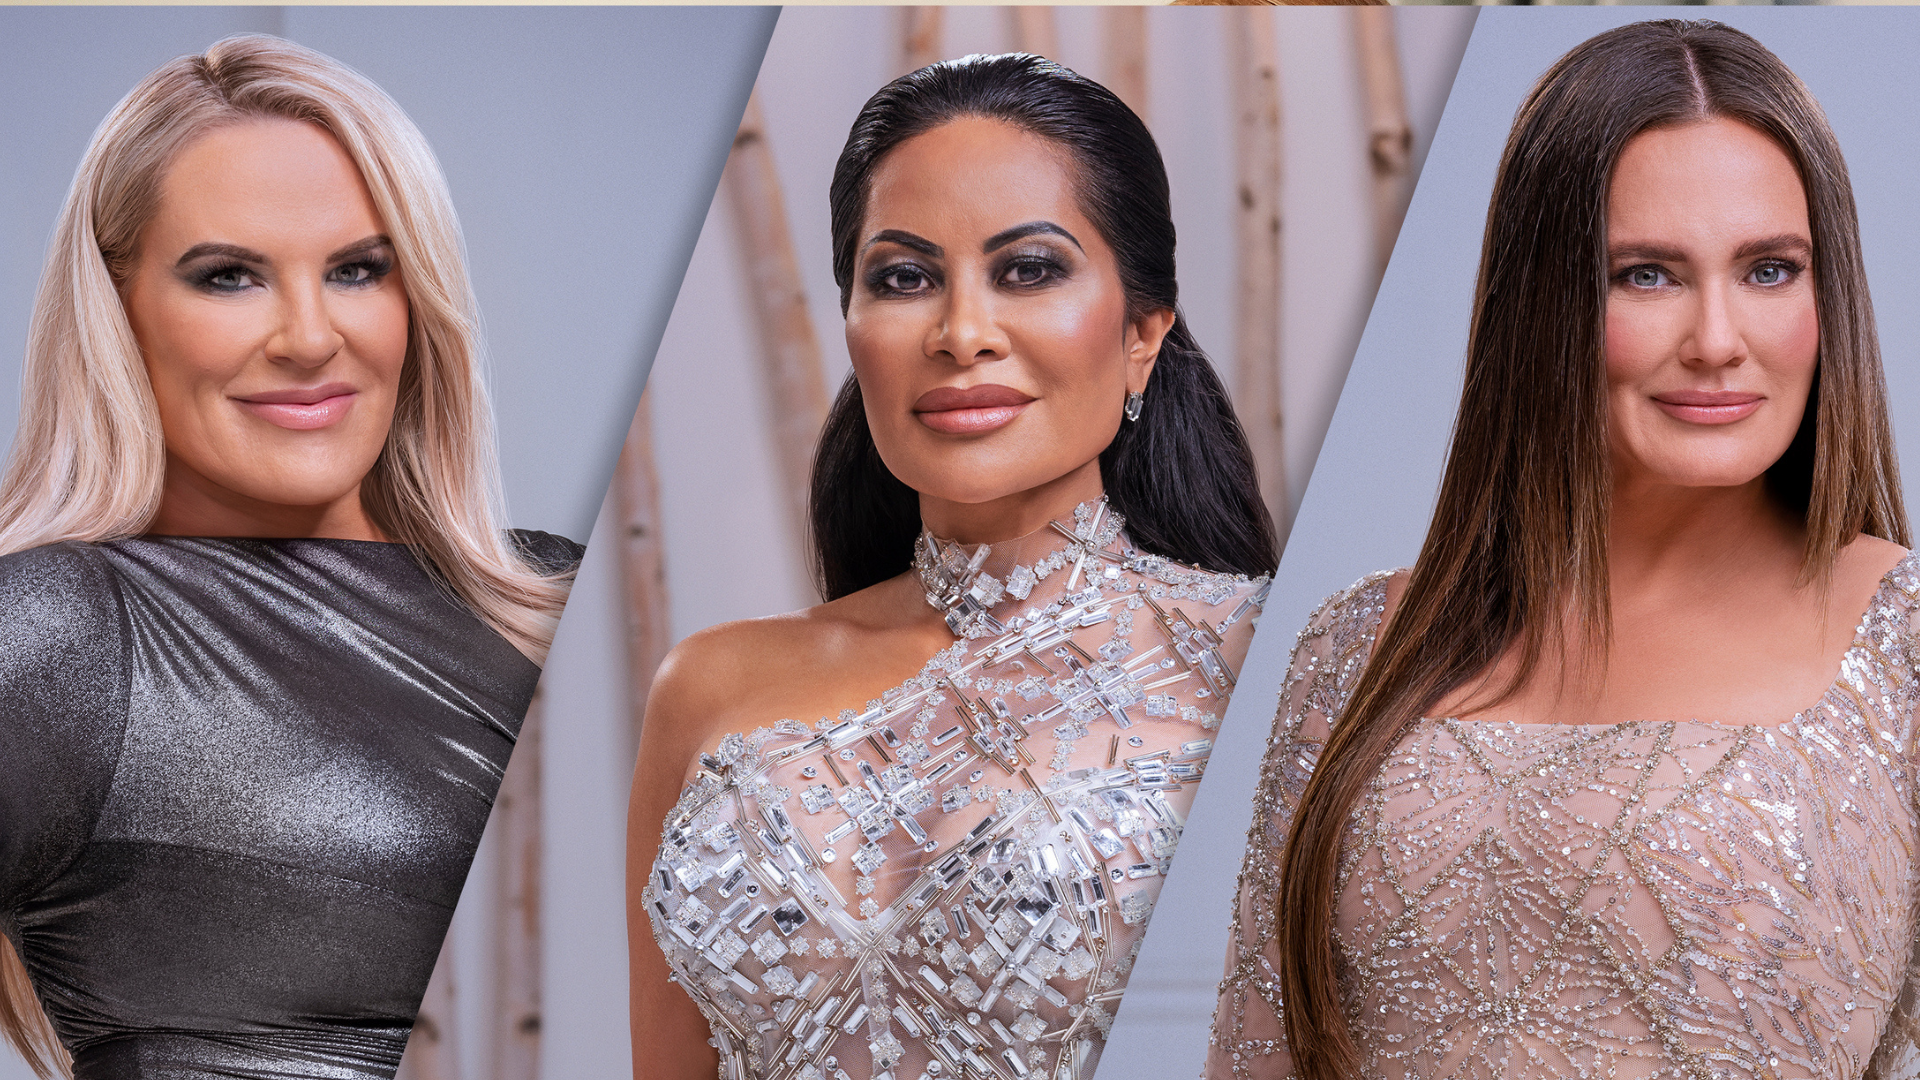 The Real Housewives of Salt Lake City - New Season September 12. Go to a video page.